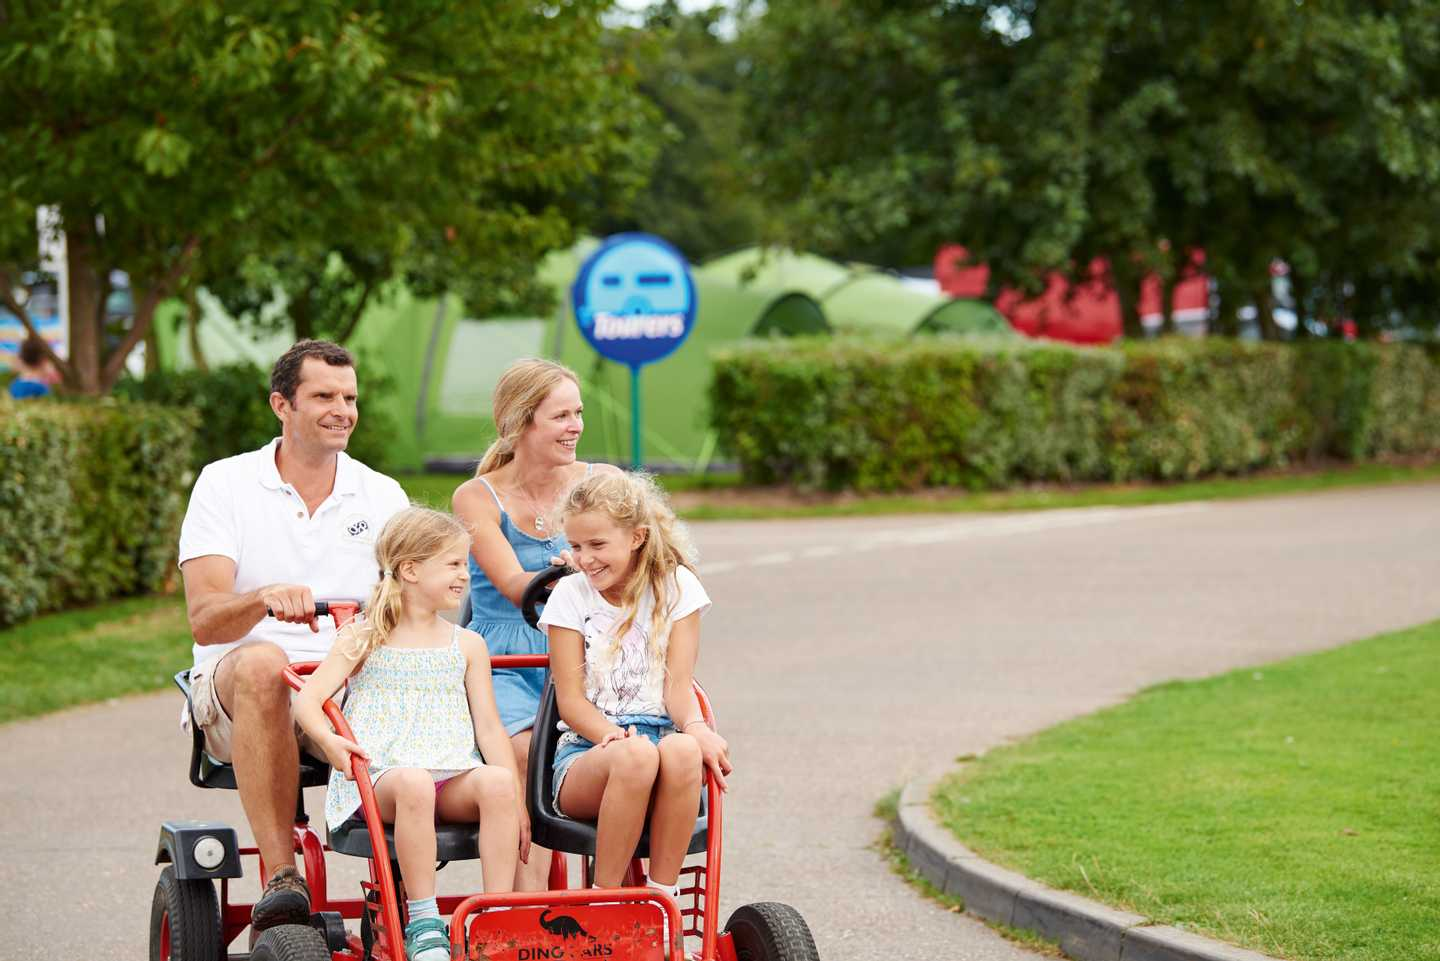 Family touring the park on a hired kart